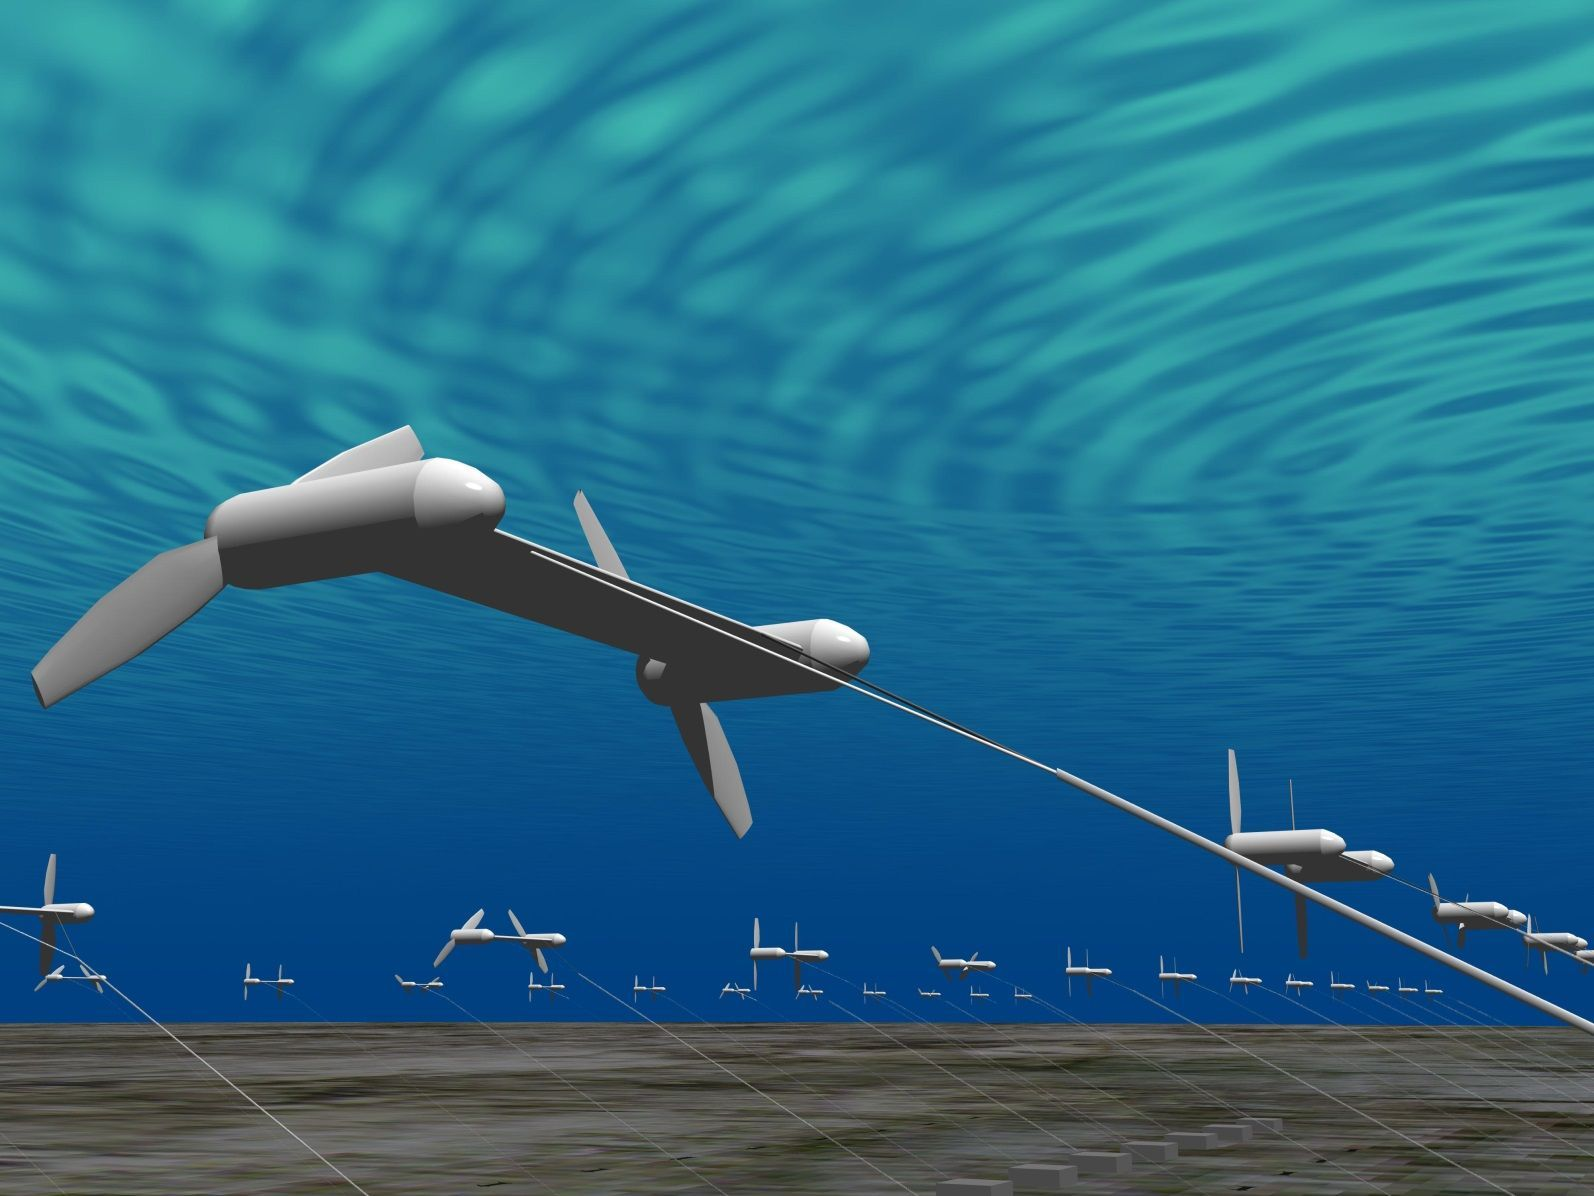 Japan Is Building Underwater Kites to Harness the Power of